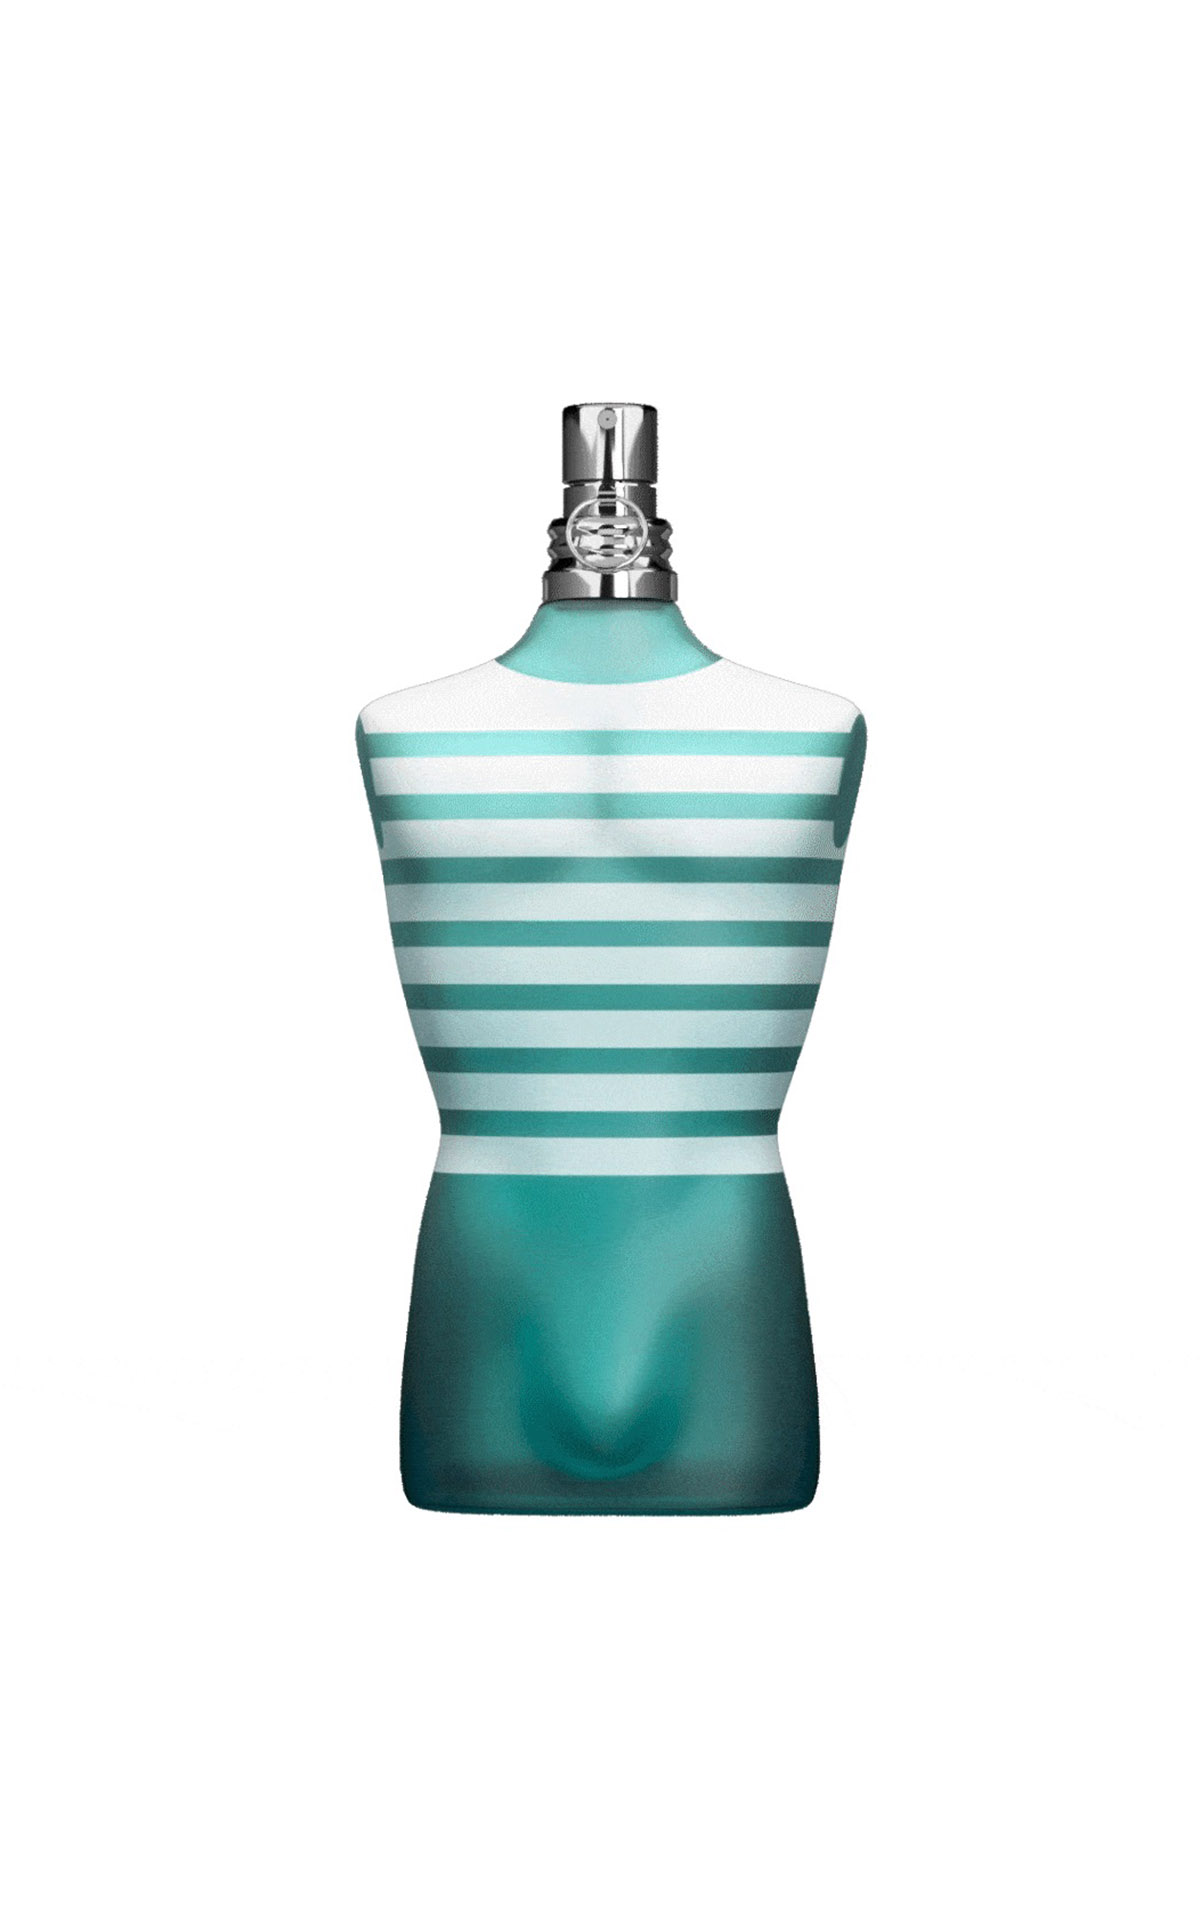 Eau de Toilette Le Male 200 ml Jean Paul Gaultier